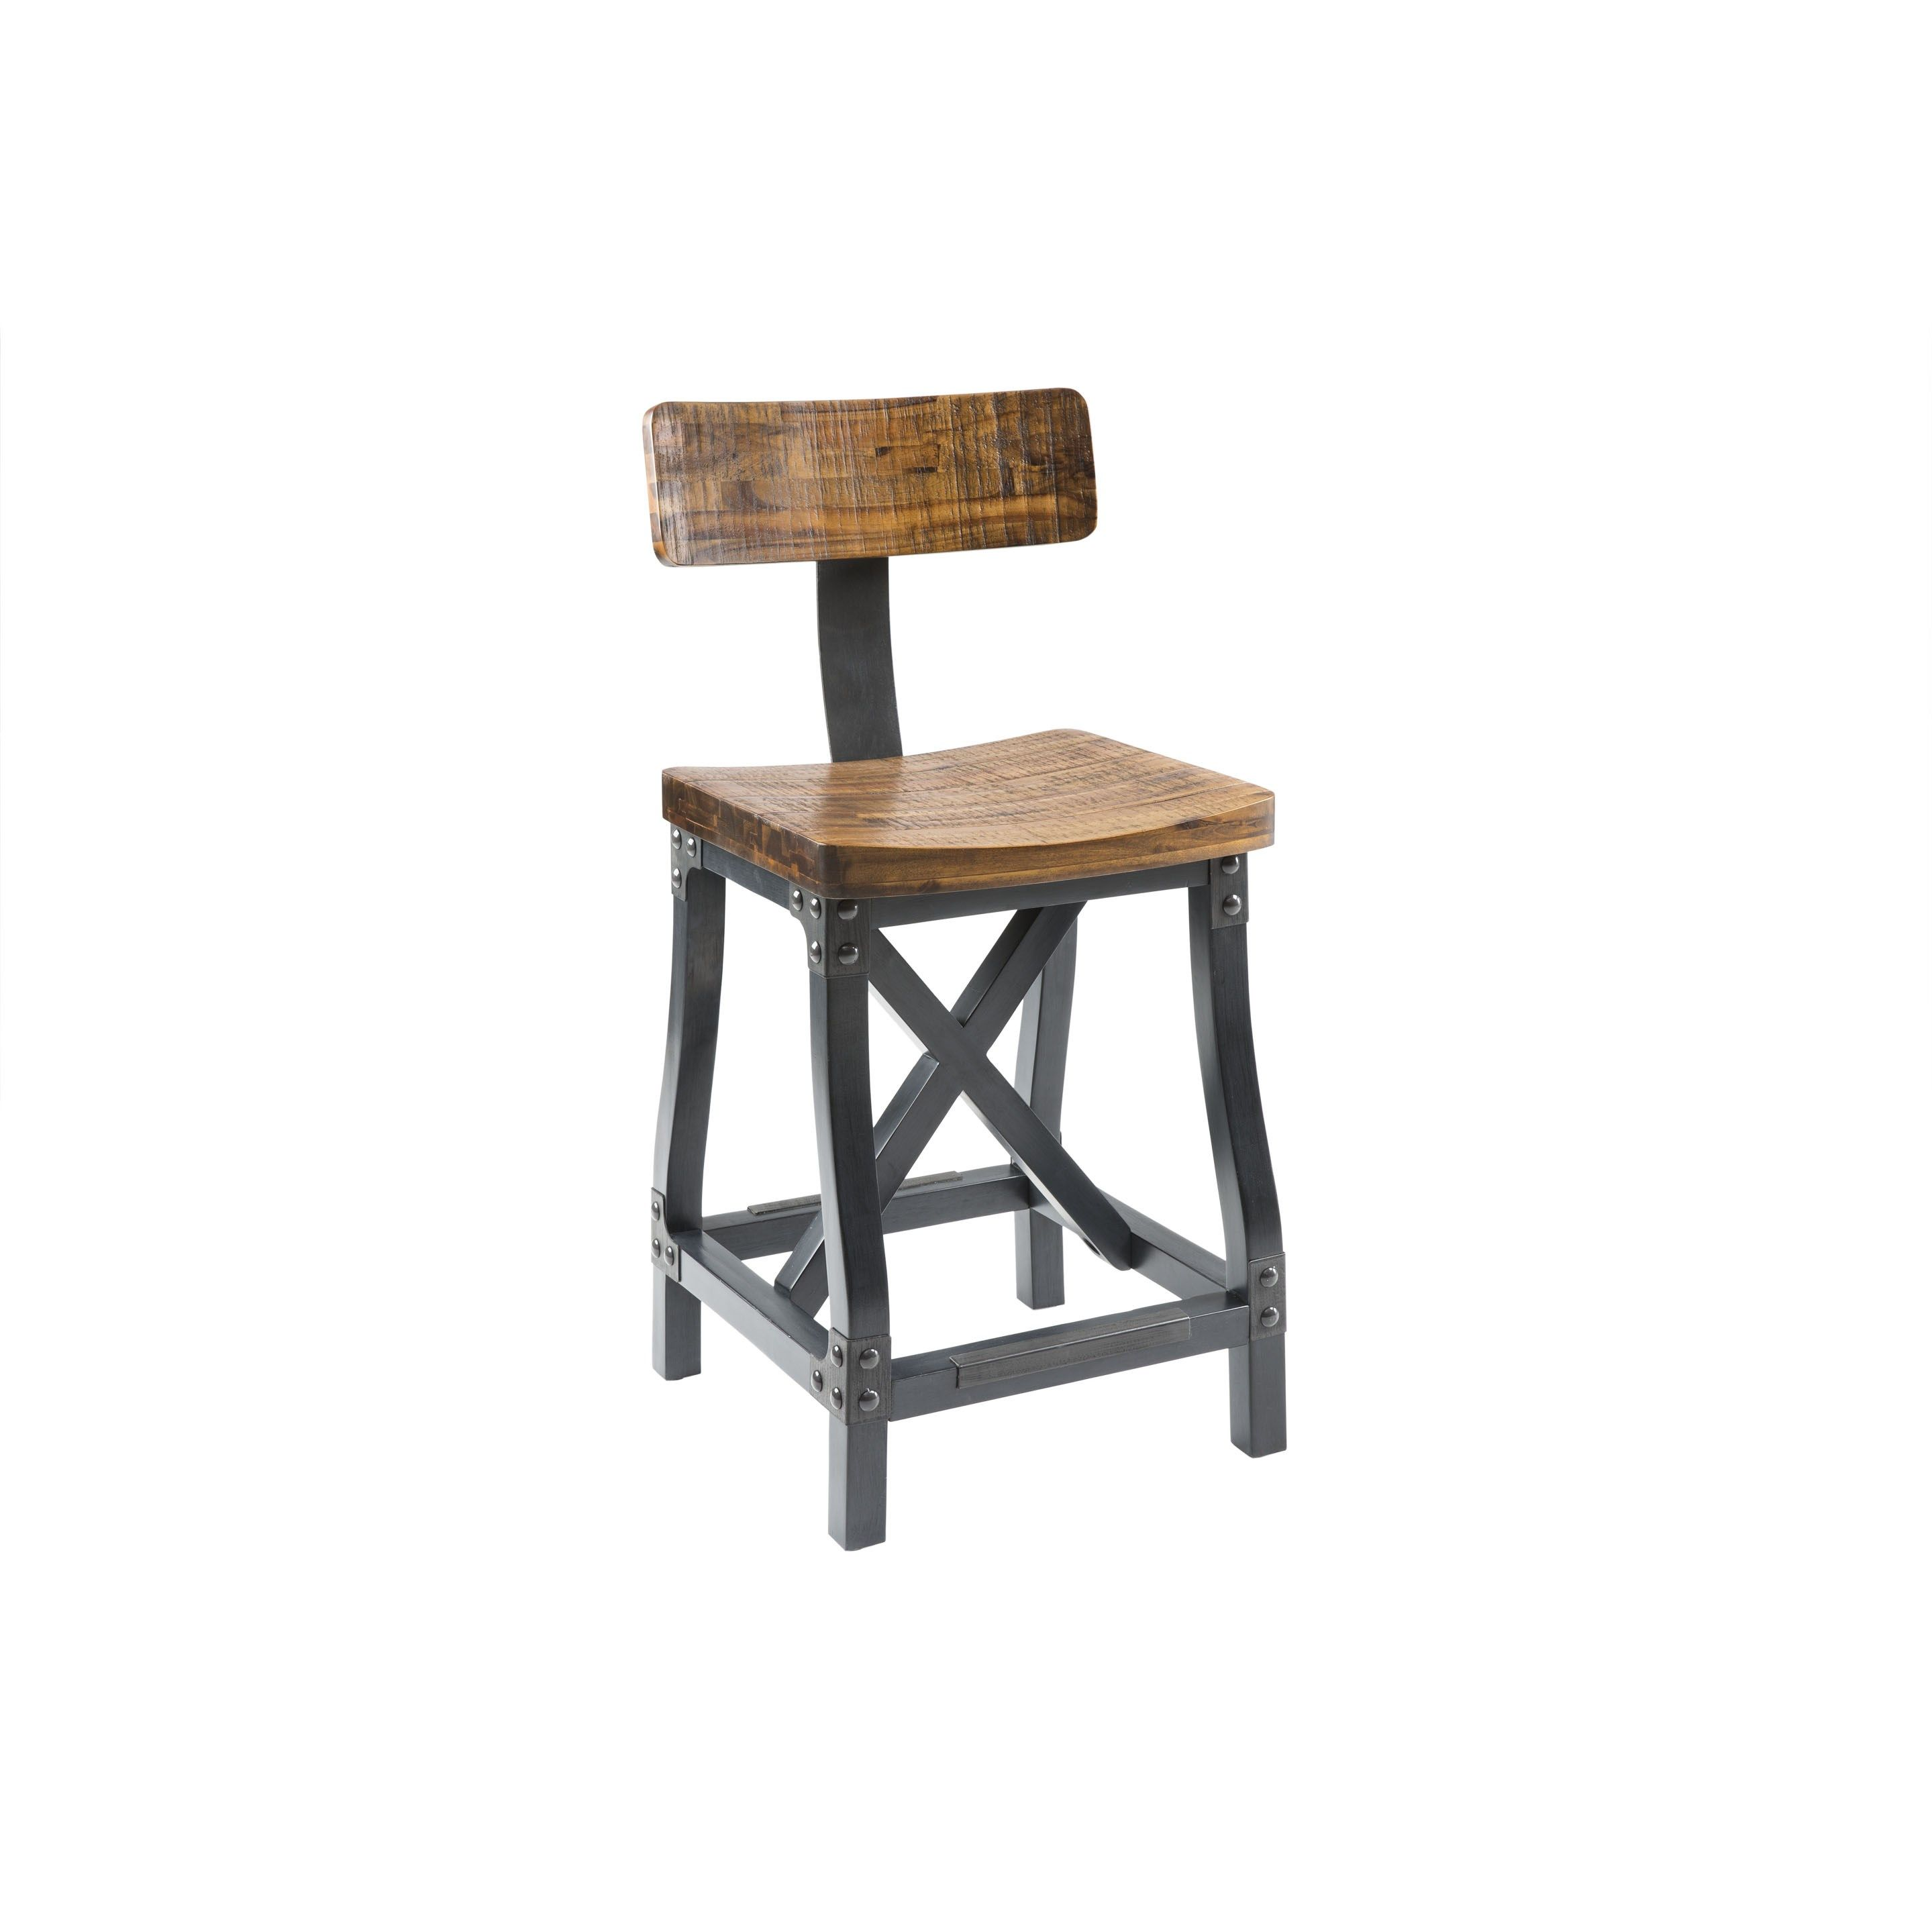 Cheyenne Rustic Industrial Counter Stool